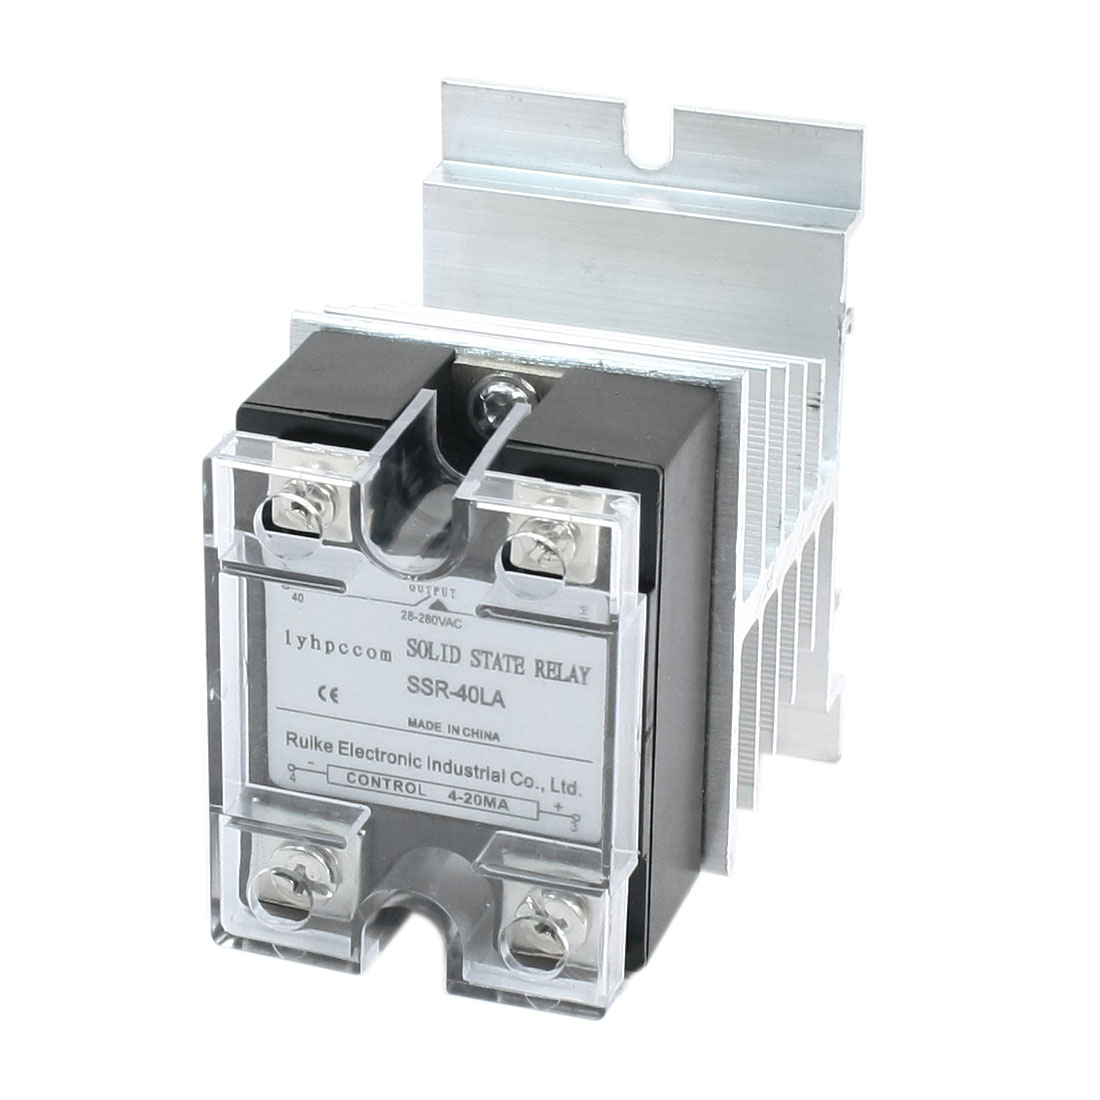 4-20mA to AC28-280V 40A 4 Screw Terminal Single Phase Aluminum Heatsink Clear Cover SSR Solid State Relay